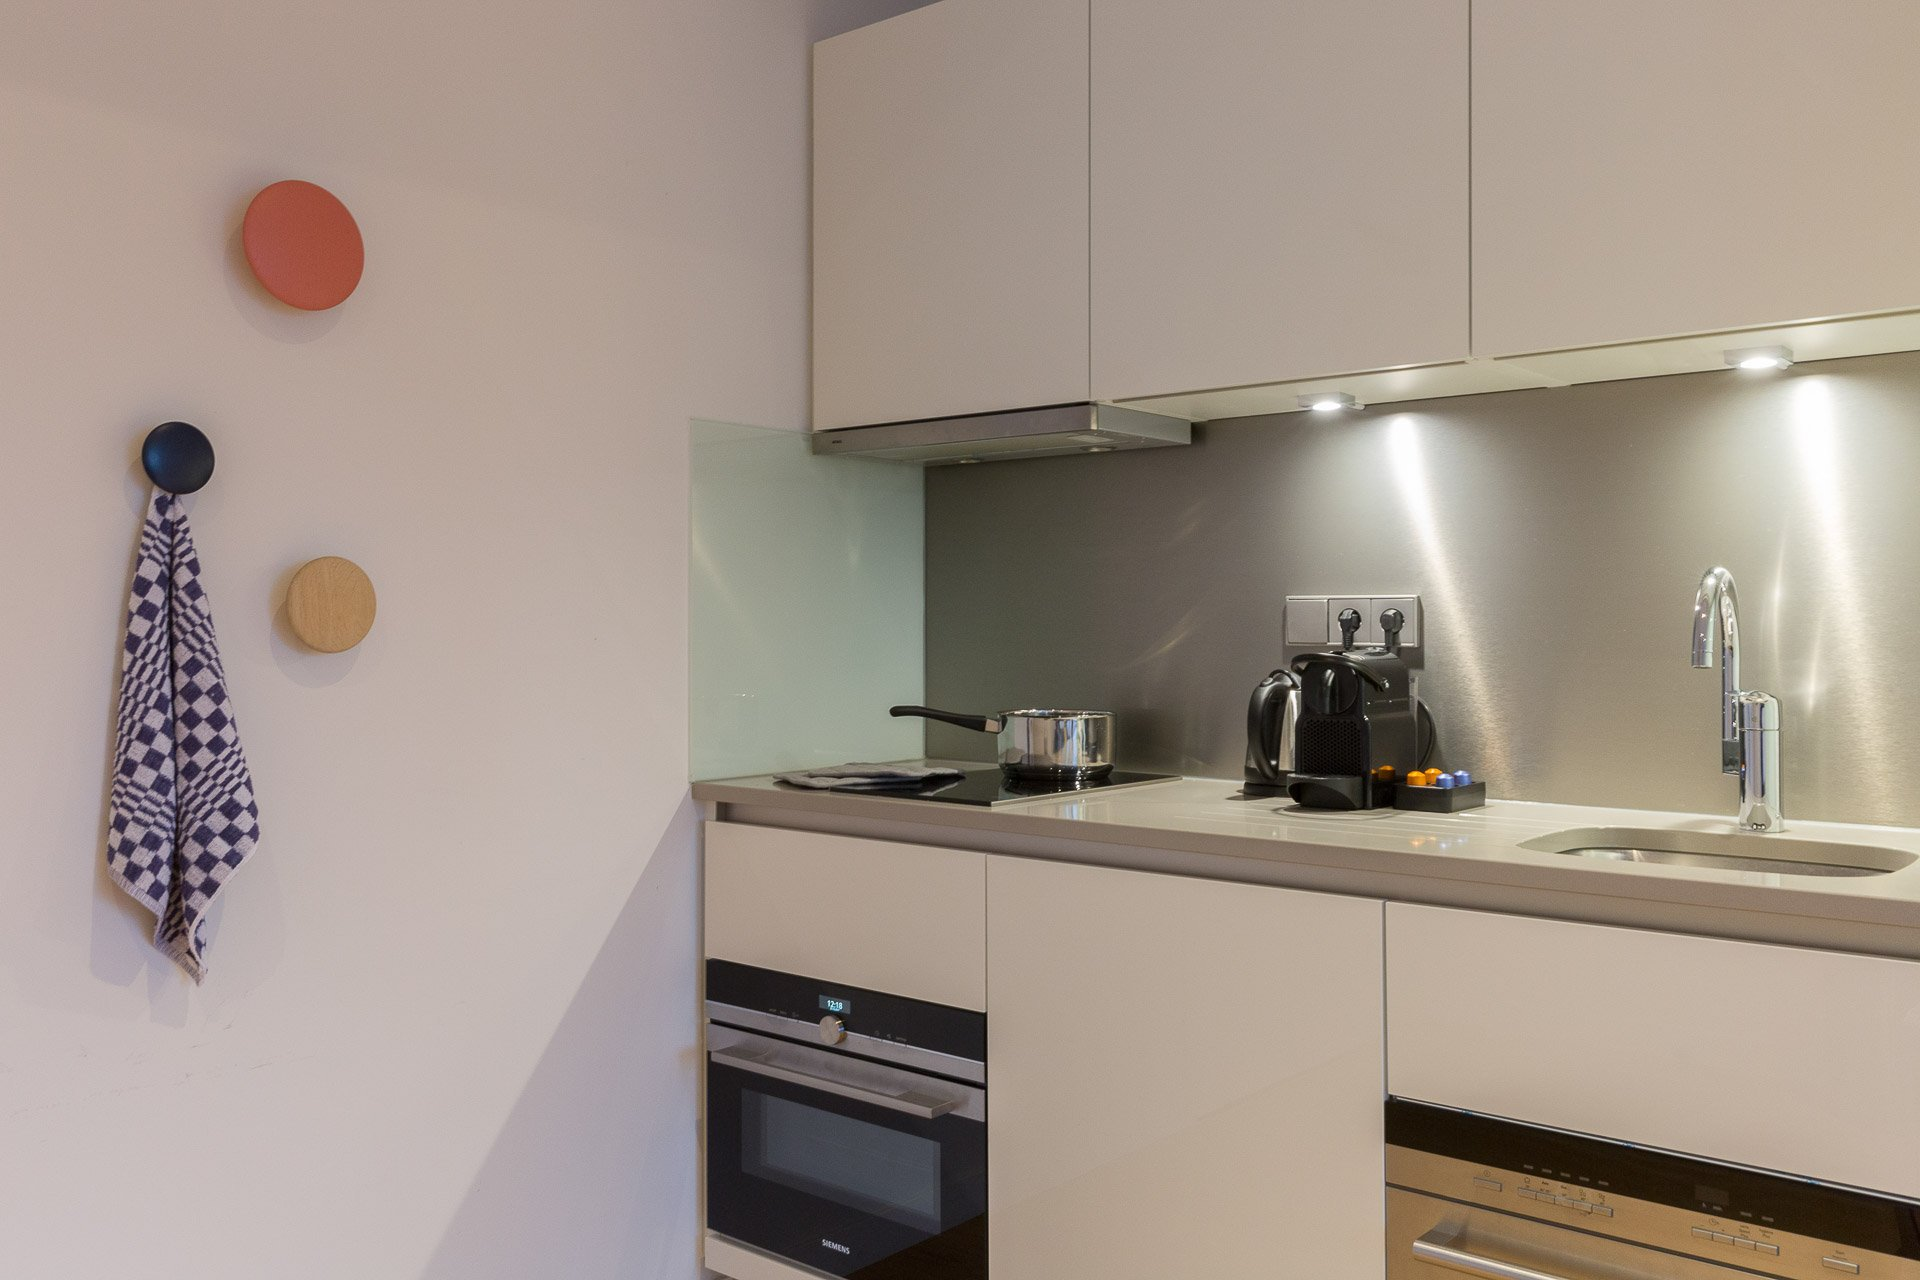 Kitchenette met Nespresso koffiemachine in PREMIER SUITES PLUS Rotterdam